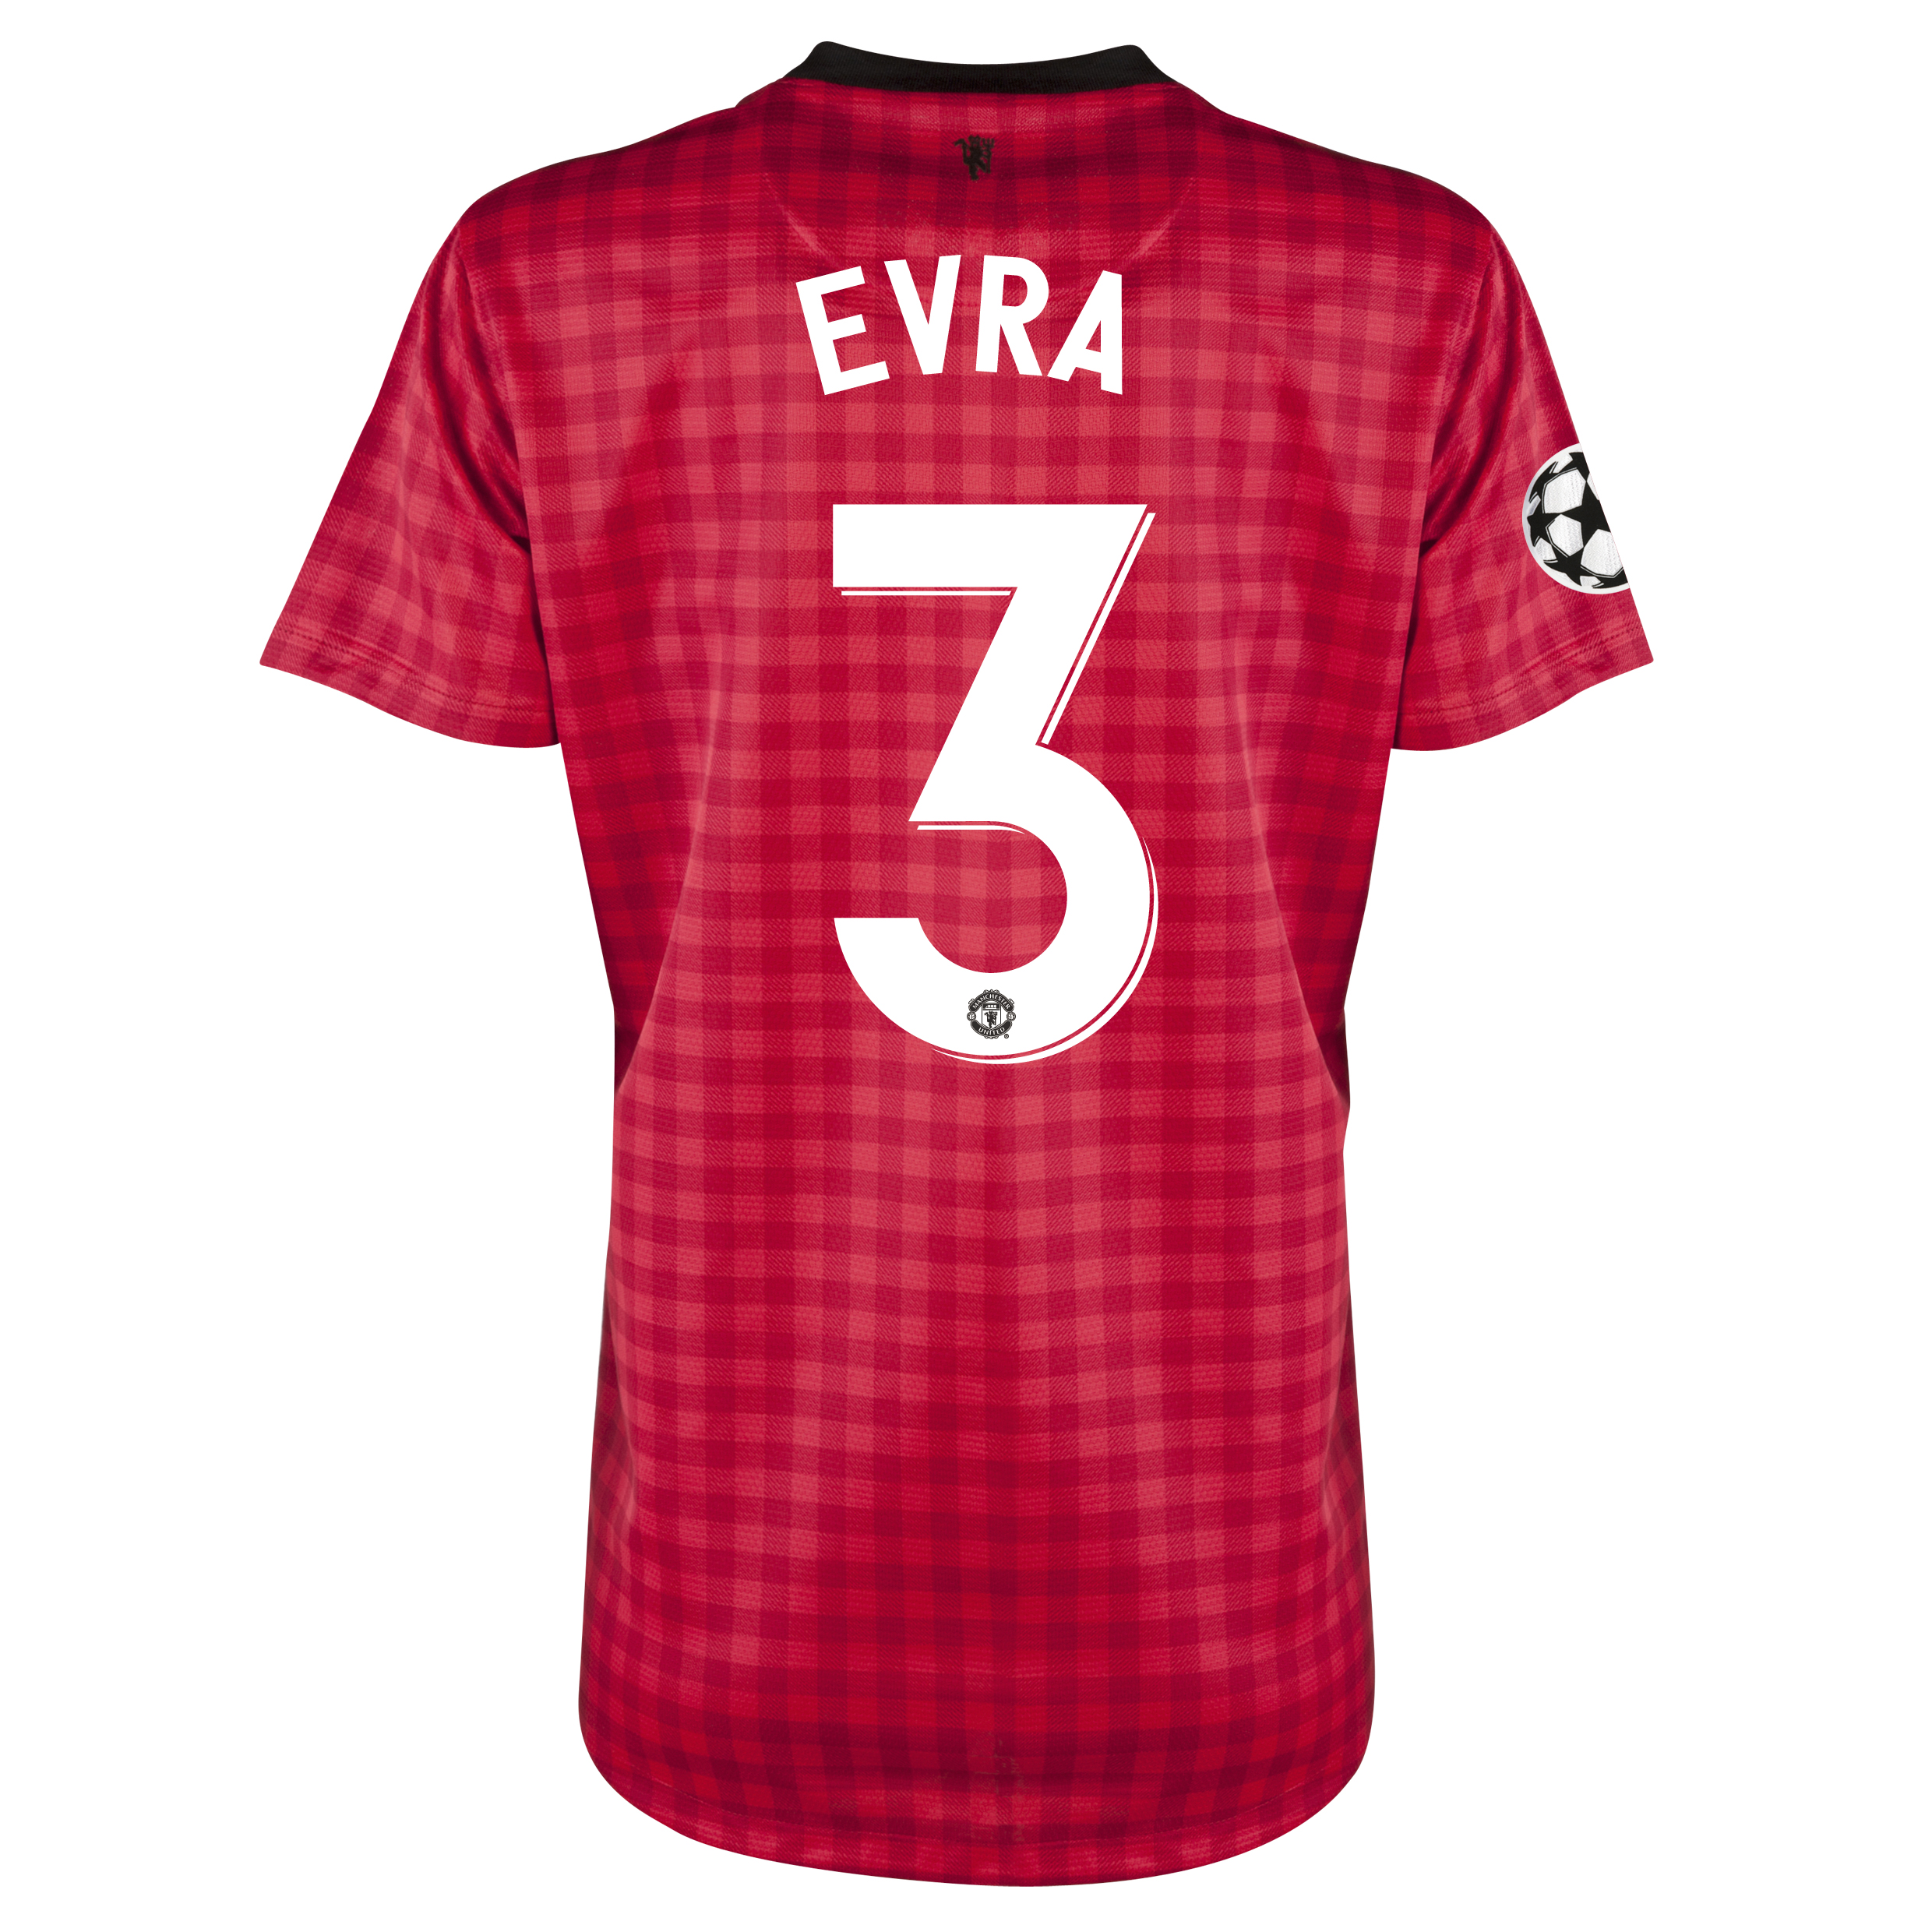 Man United UEFA Champions League Home Shirt 2012/13 - Womens with Evra 3 printing